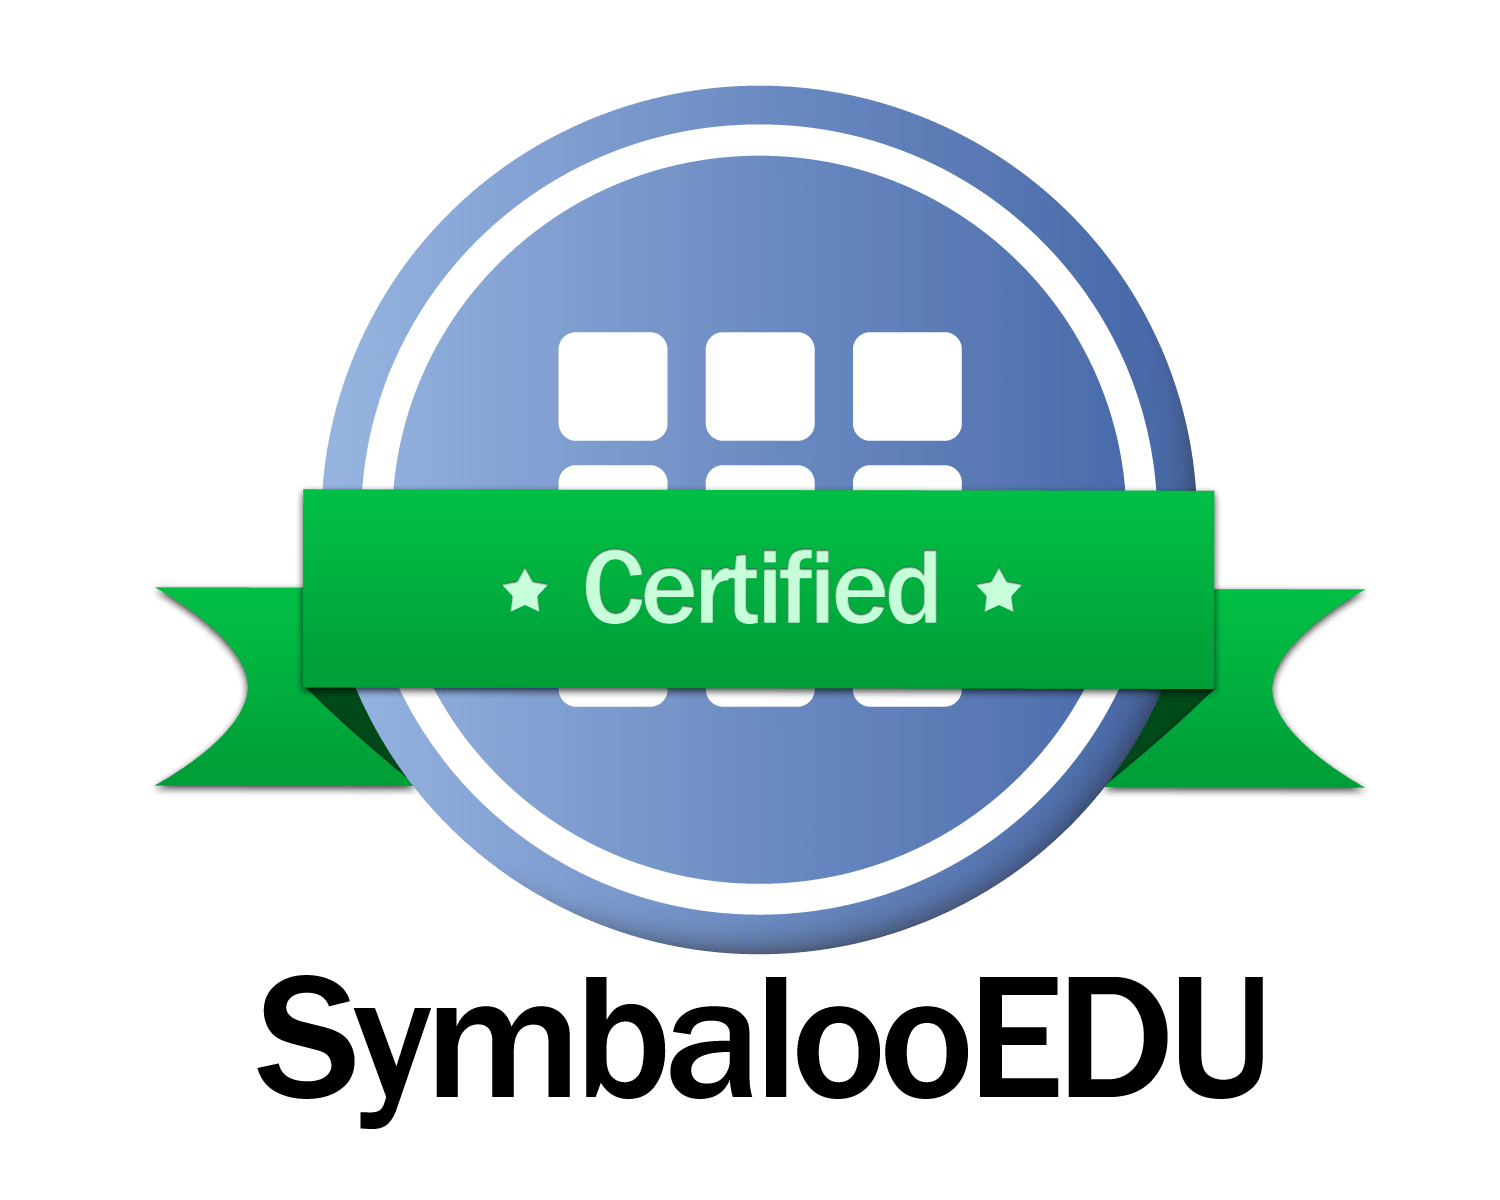 Symbaloo Certified